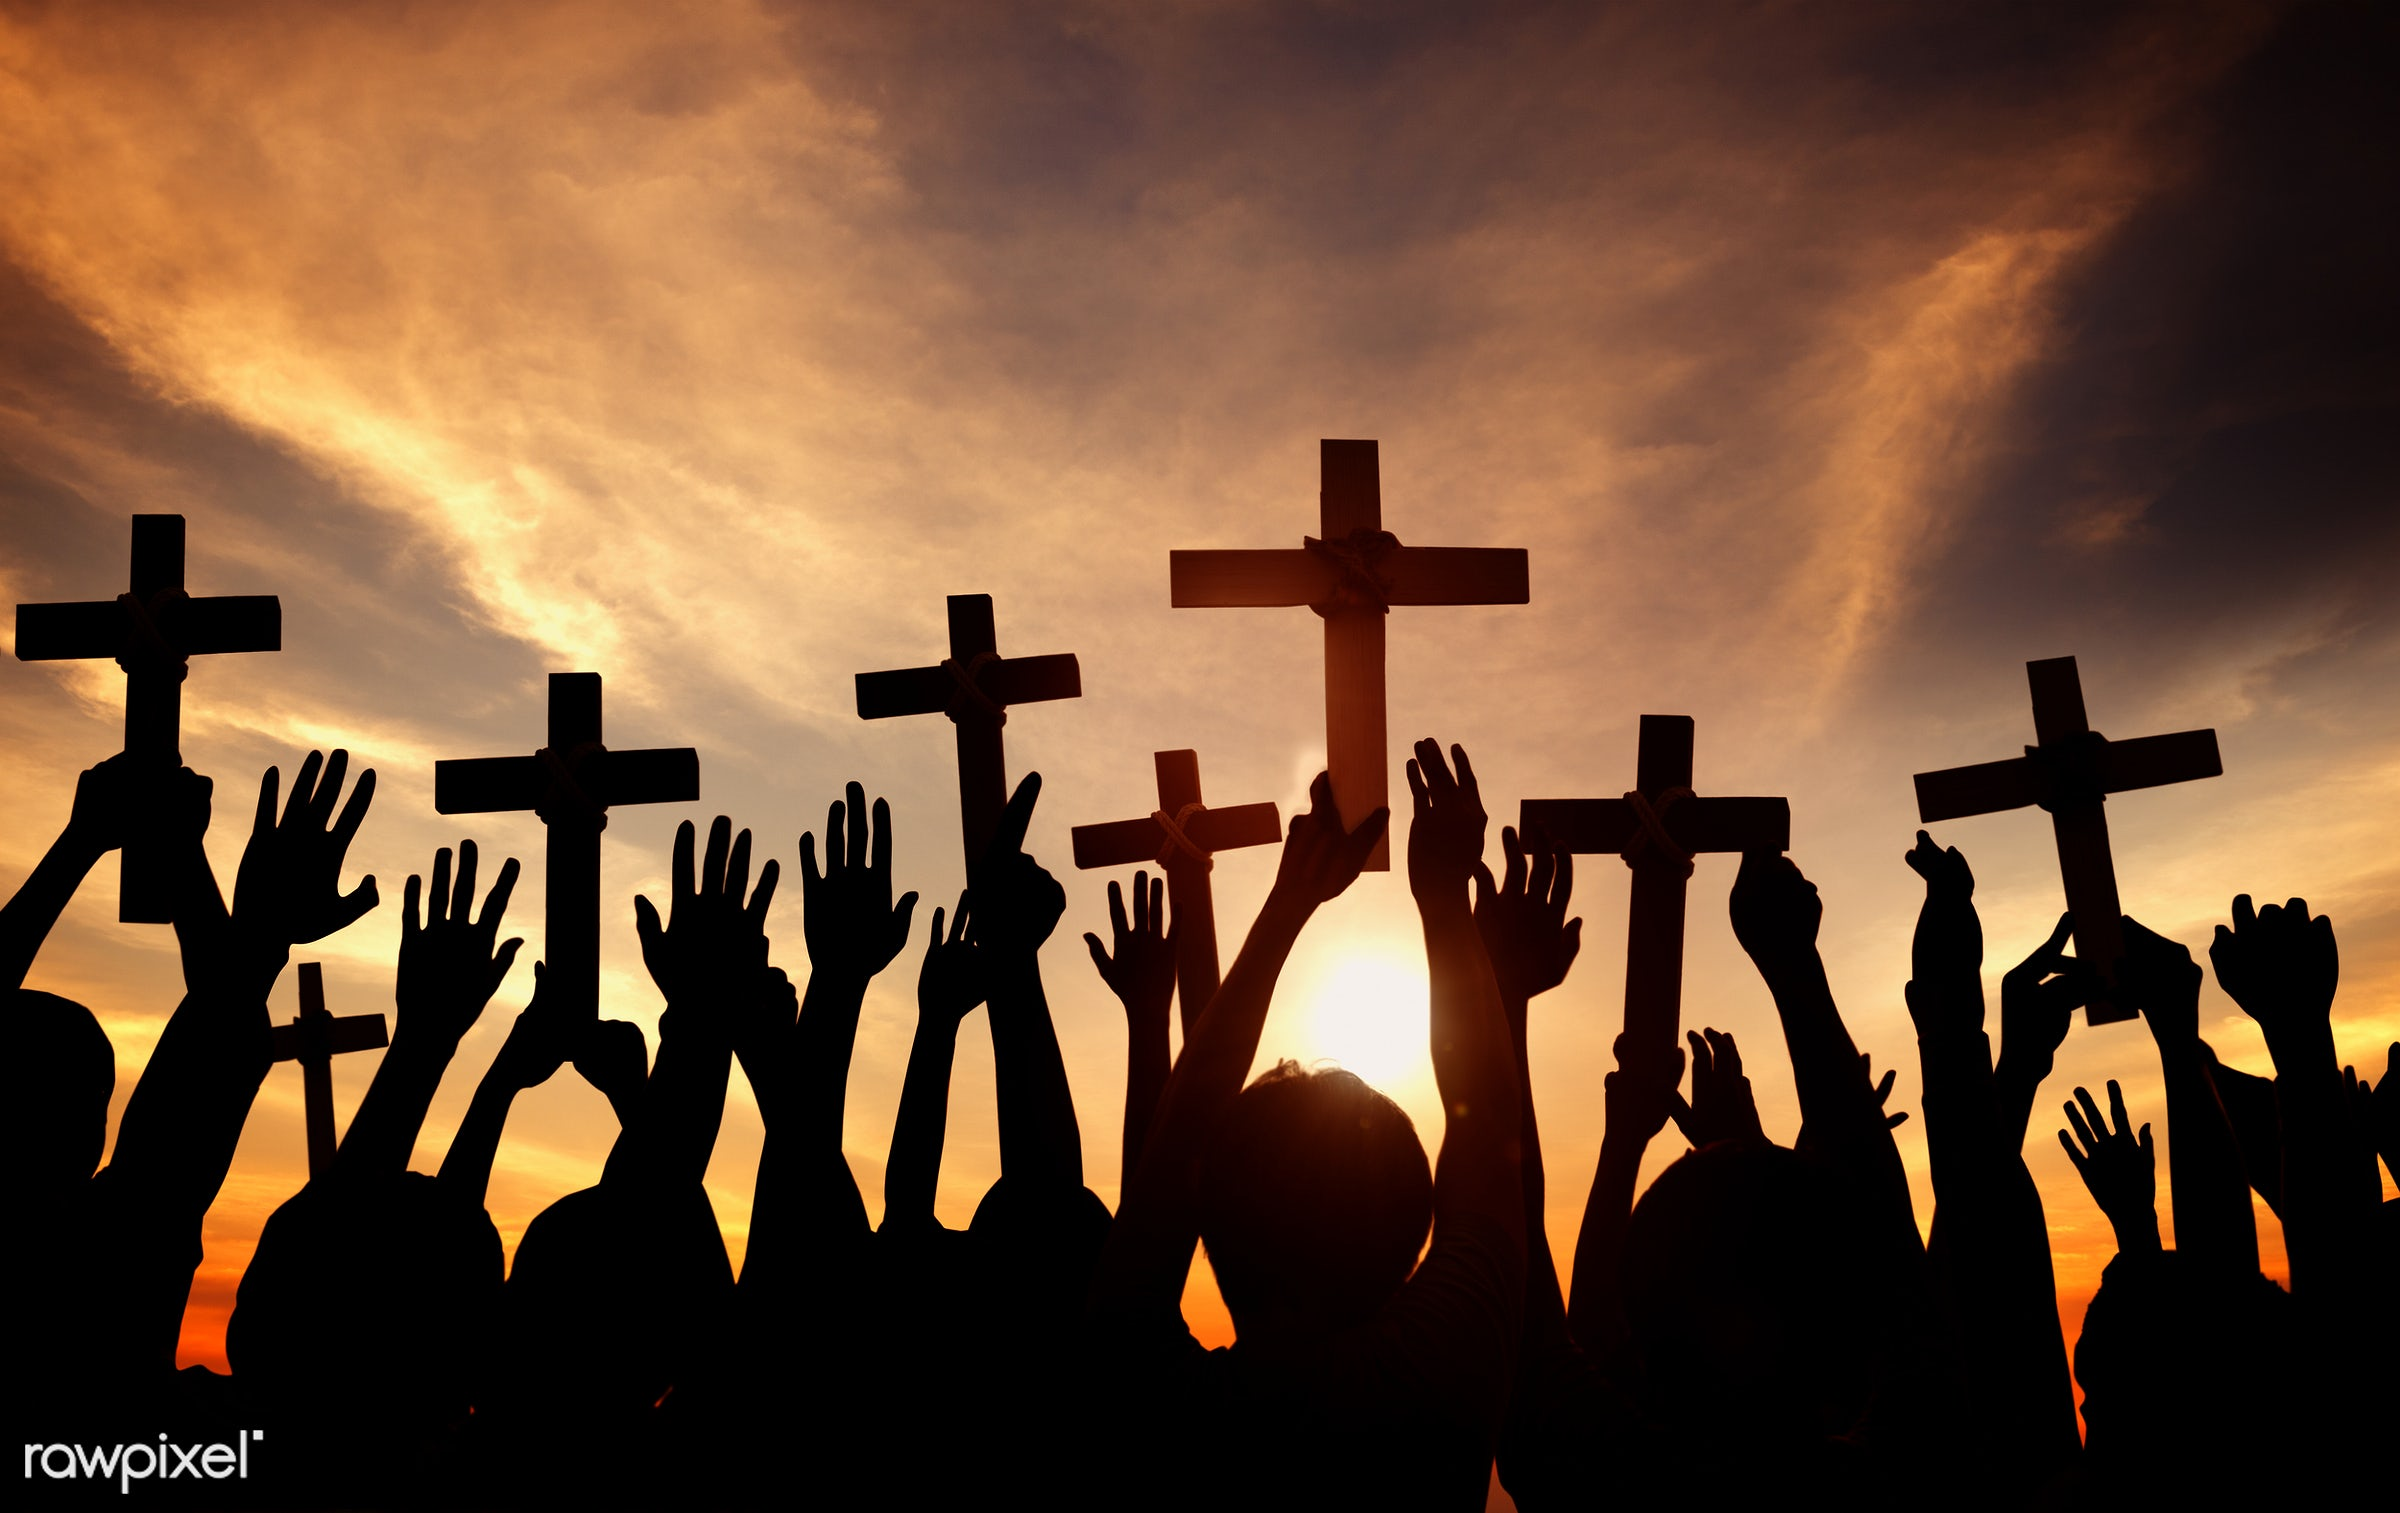 Silhouette of Christians holding crosses - believe, christian, cloud, god, religion, religious, sunset, applauding, arms...